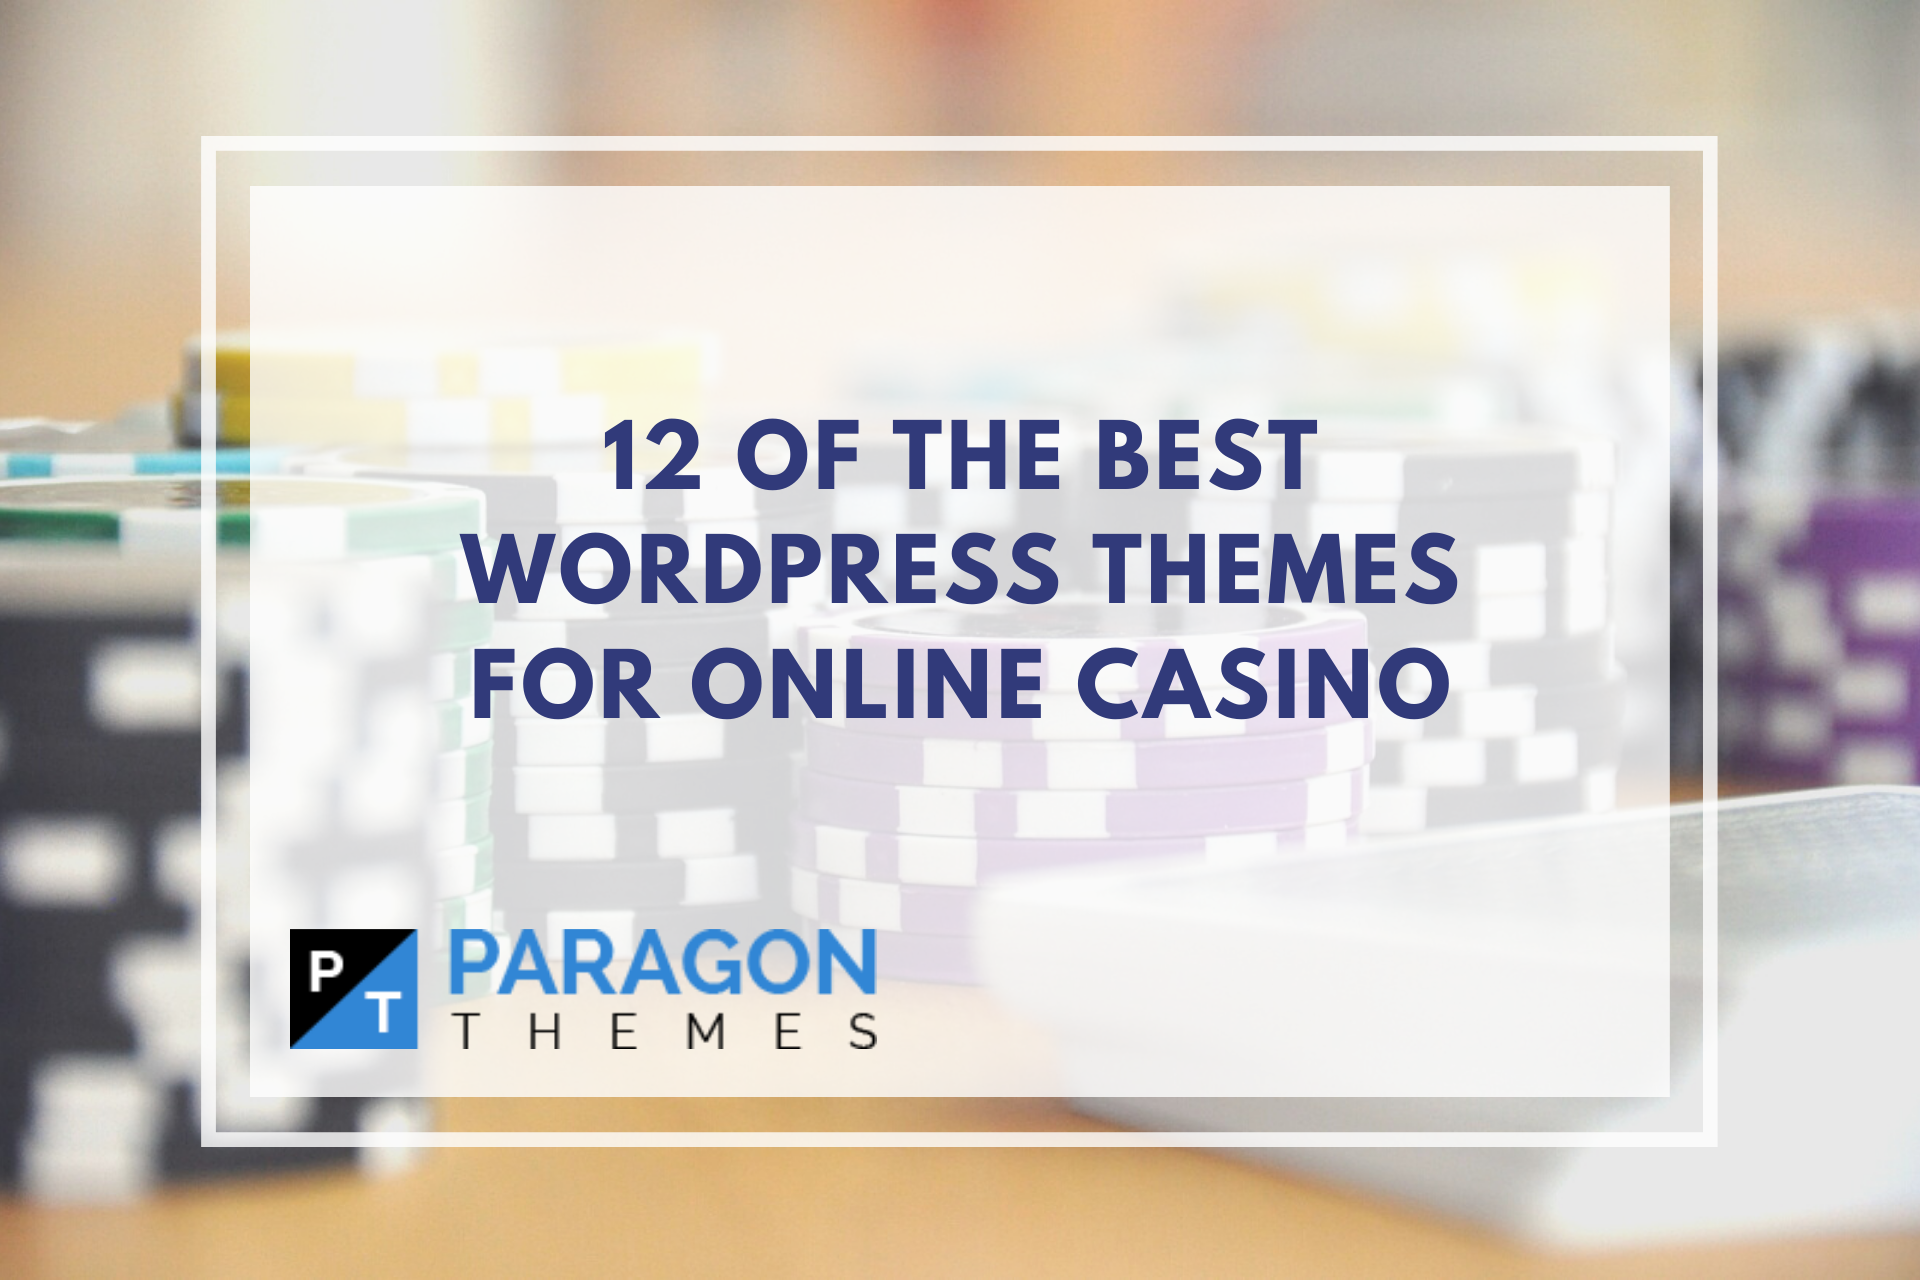 12 of the Best WordPress Themes for Online Casino